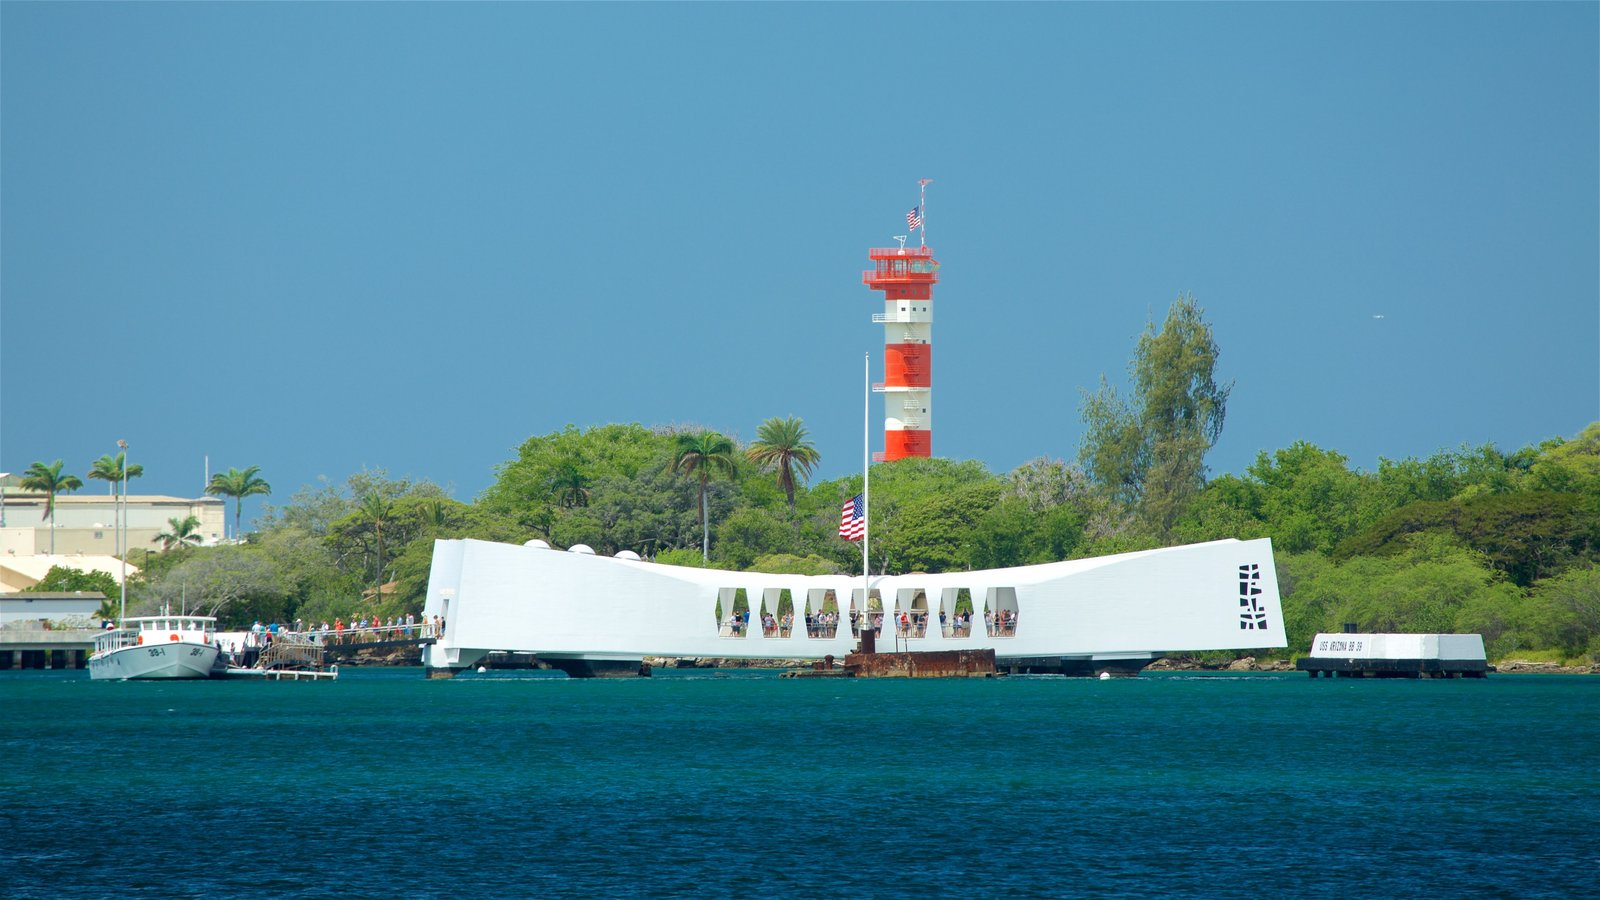 Pearl Harbor which includes a bay or harbor